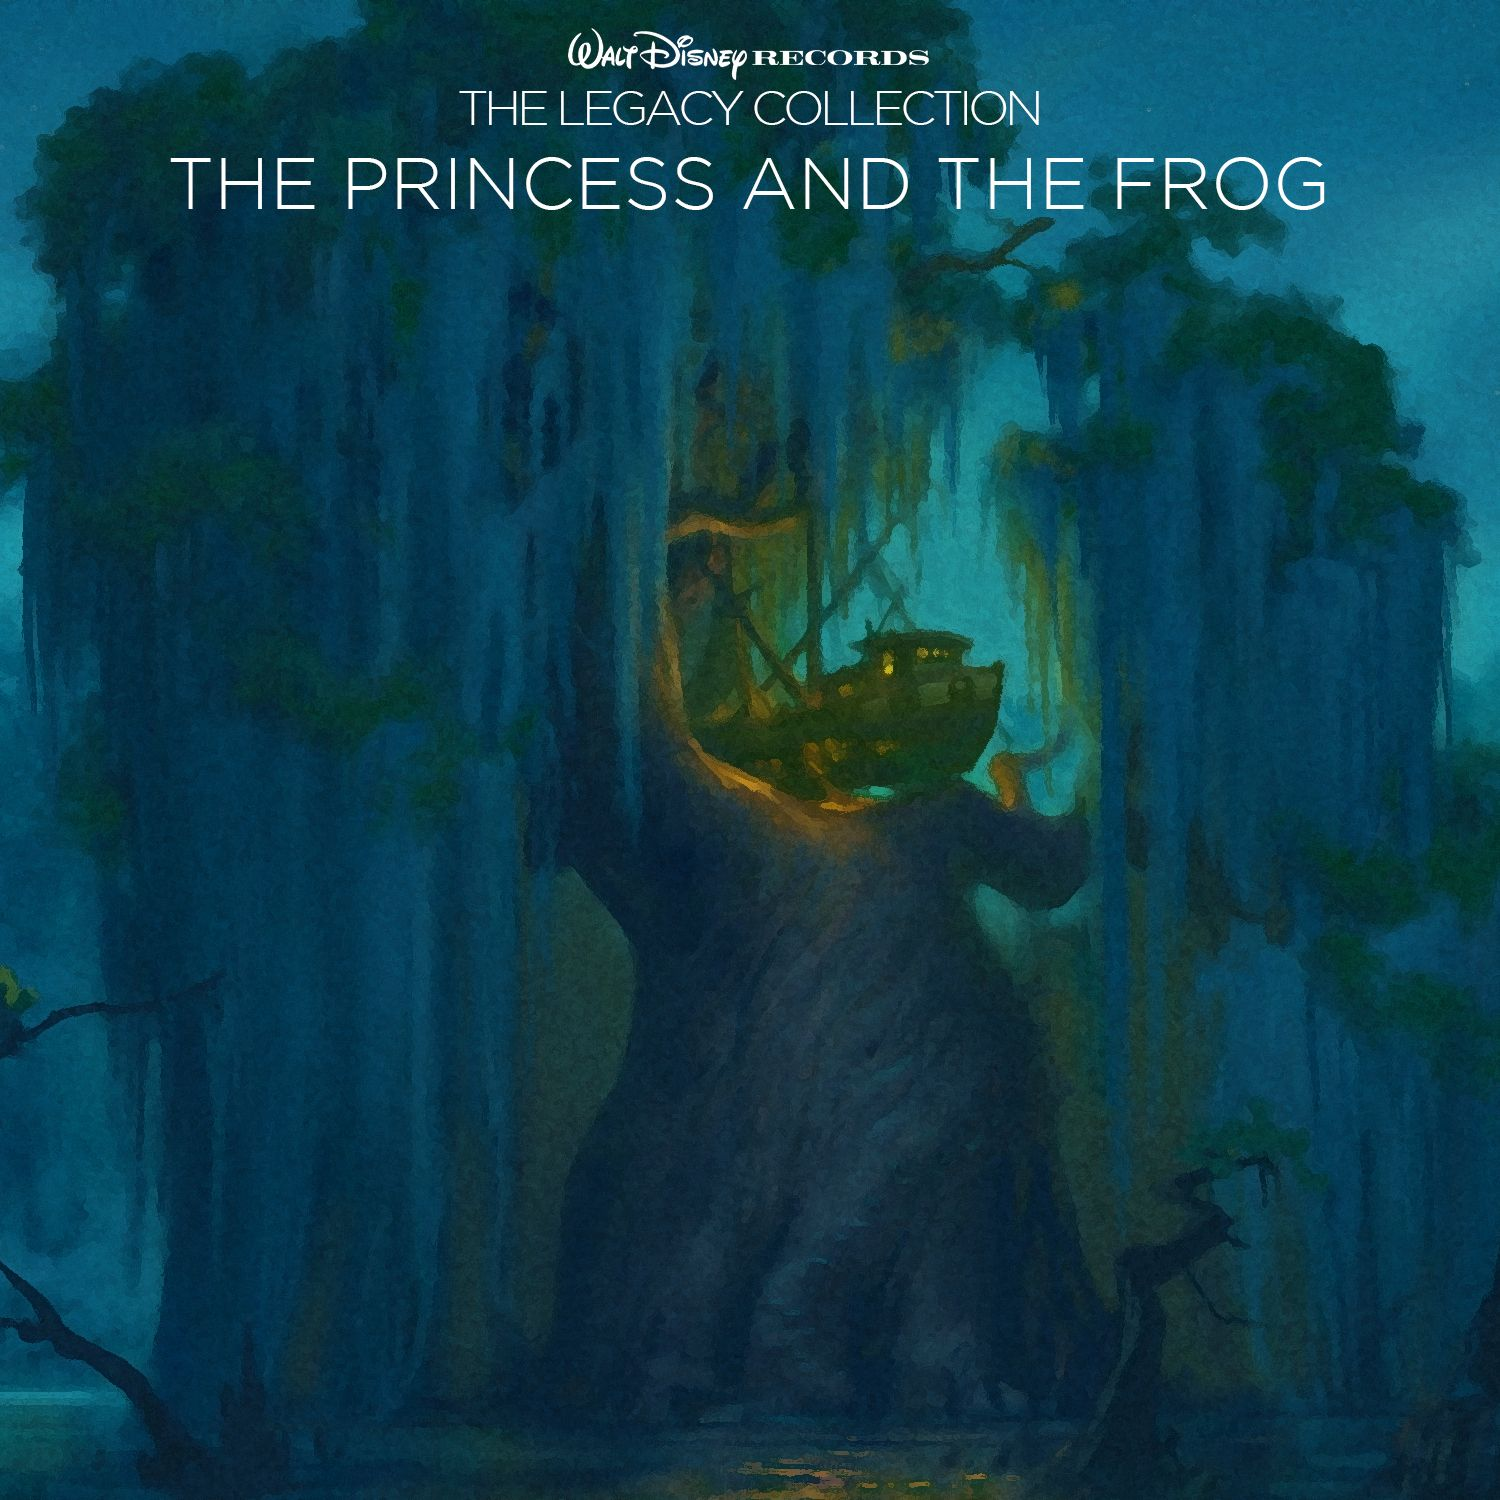 Custom artwork for 'The Princess and the Frog' in the style of Disney's The Legacy Collection. I used concept art from the film for this one.